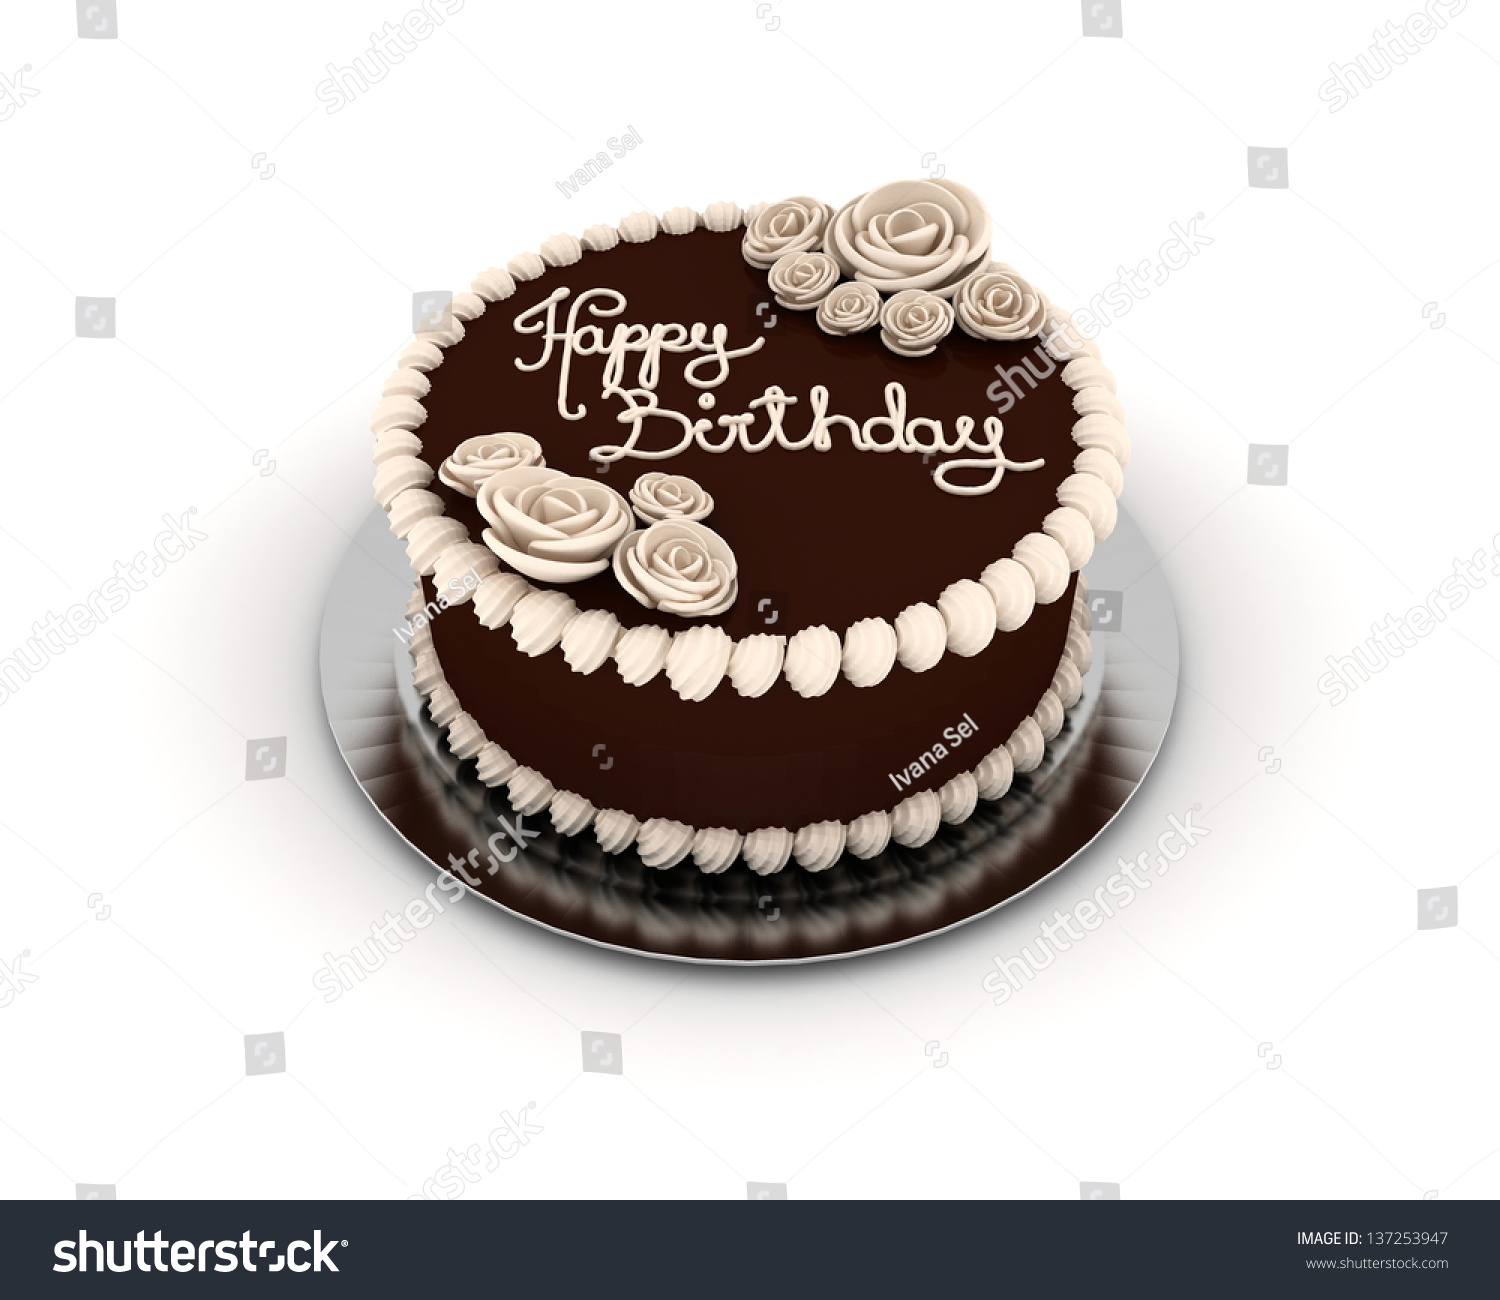 Chocolate birthday cake decorated creamy ornaments stock chocolate birthday cake decorated with creamy ornaments and flowers isolated on white background izmirmasajfo